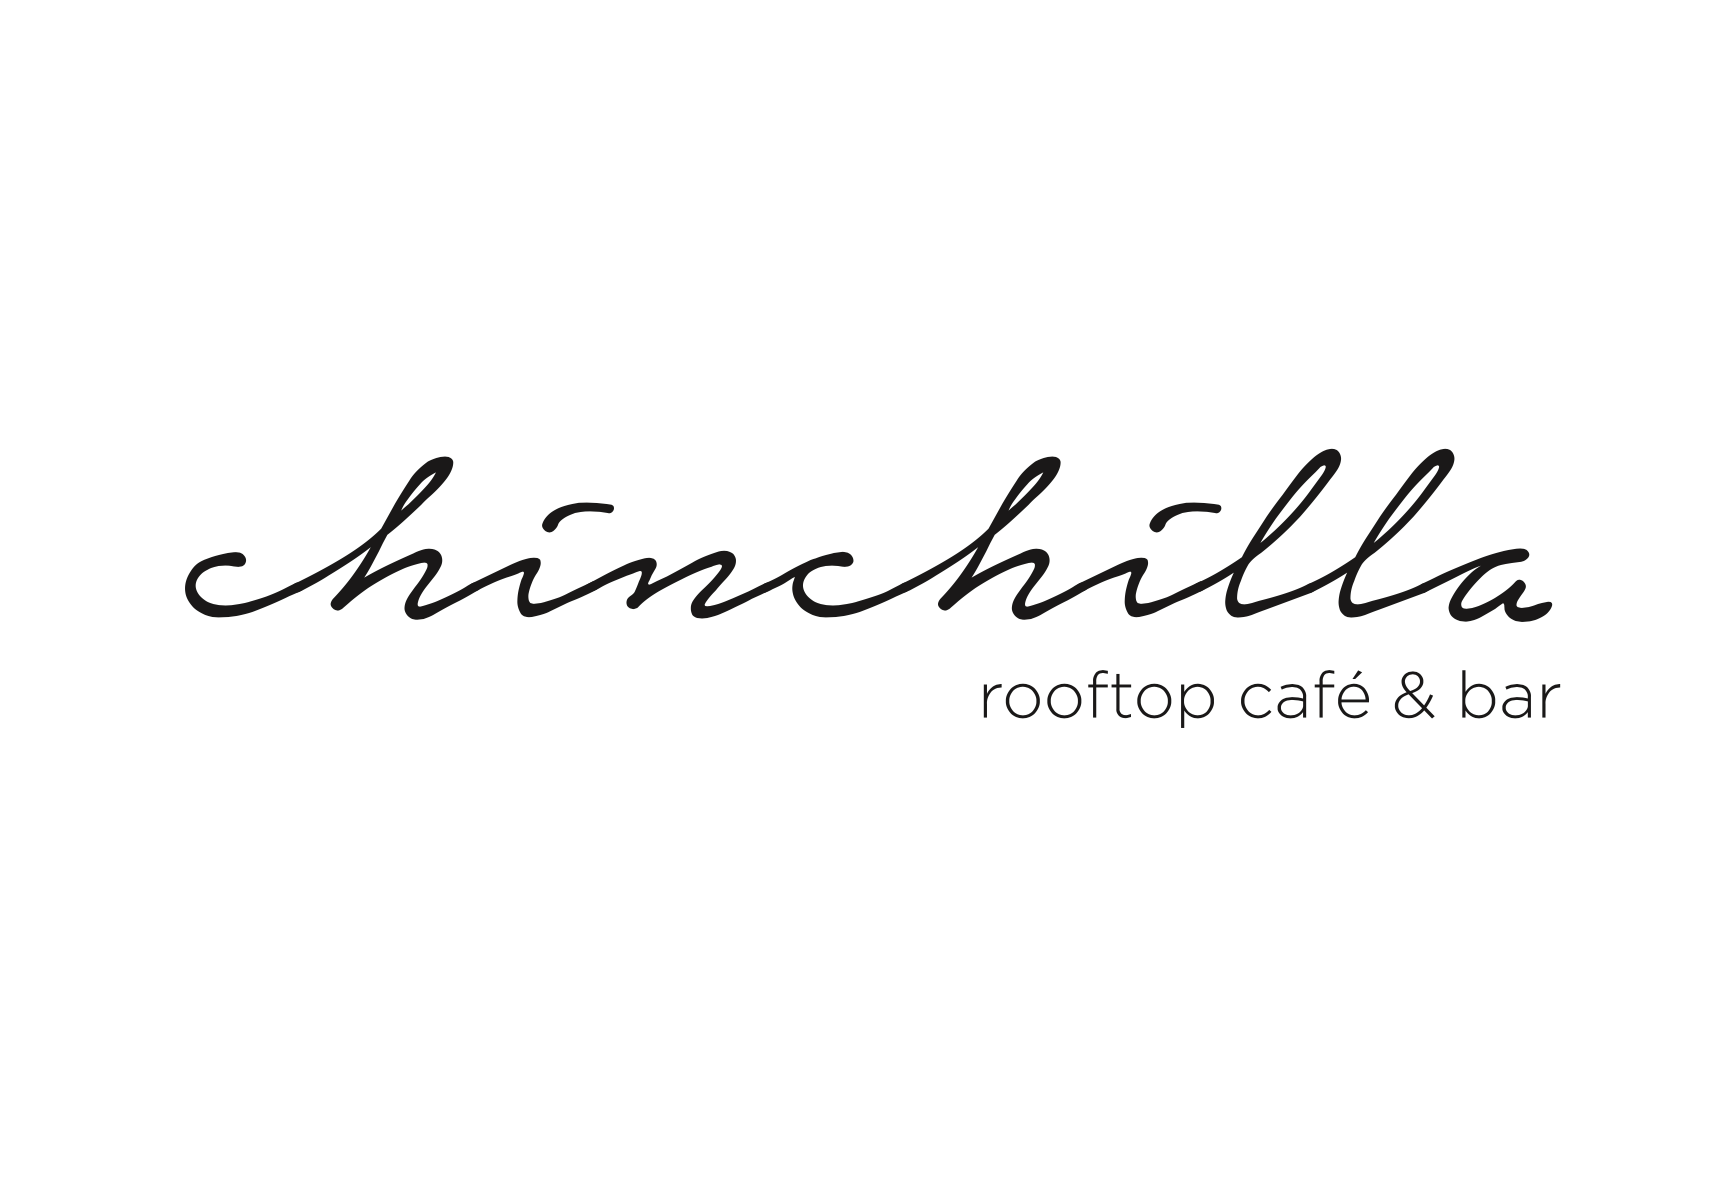 chinchilla rooftop cafe and bar luxo blog